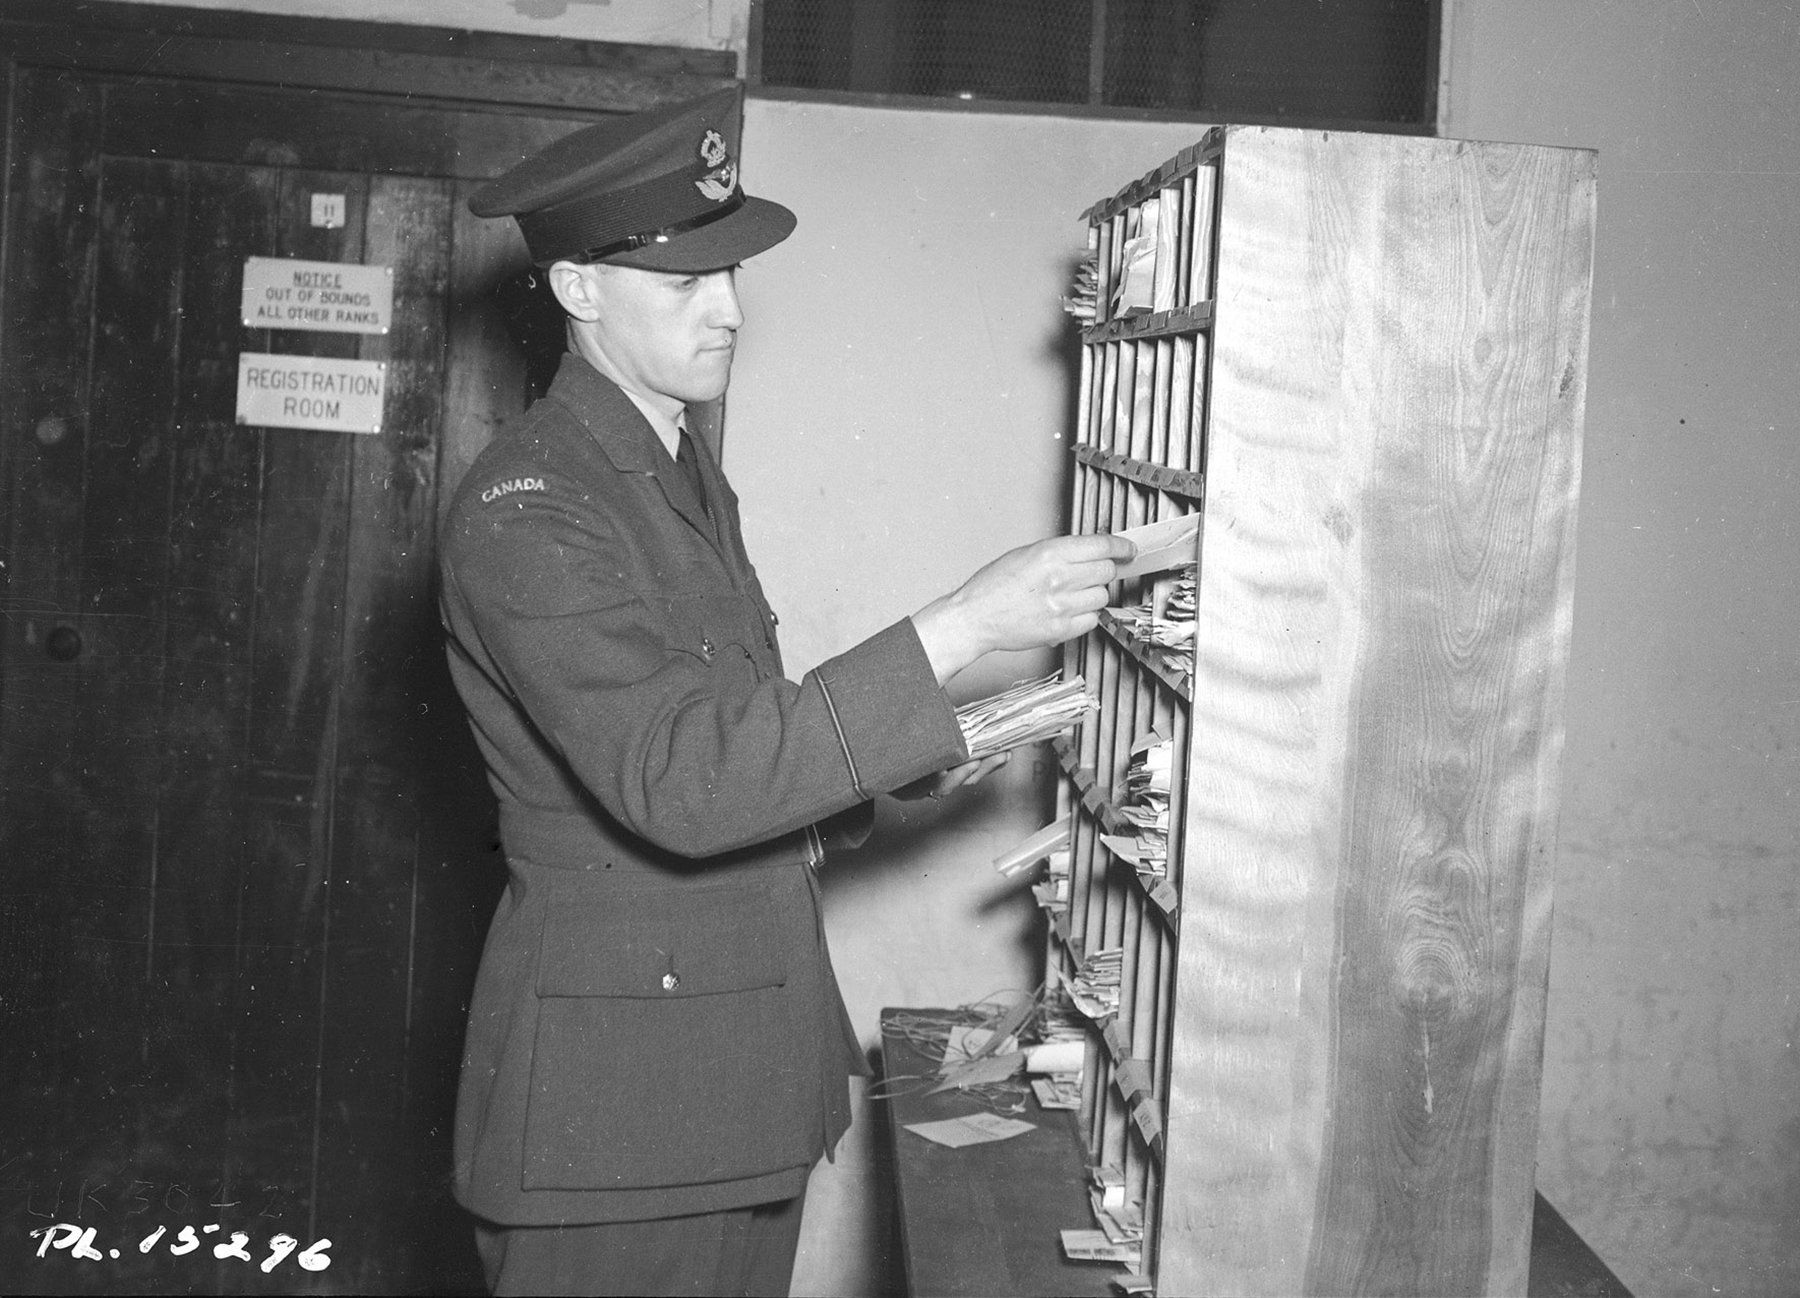 Pilot Officer A.B. Morris (Welland, Ontario), recently transferred from the Army Postal Corps, sorts letters on January 14, 1943. PHOTO: DND Archives